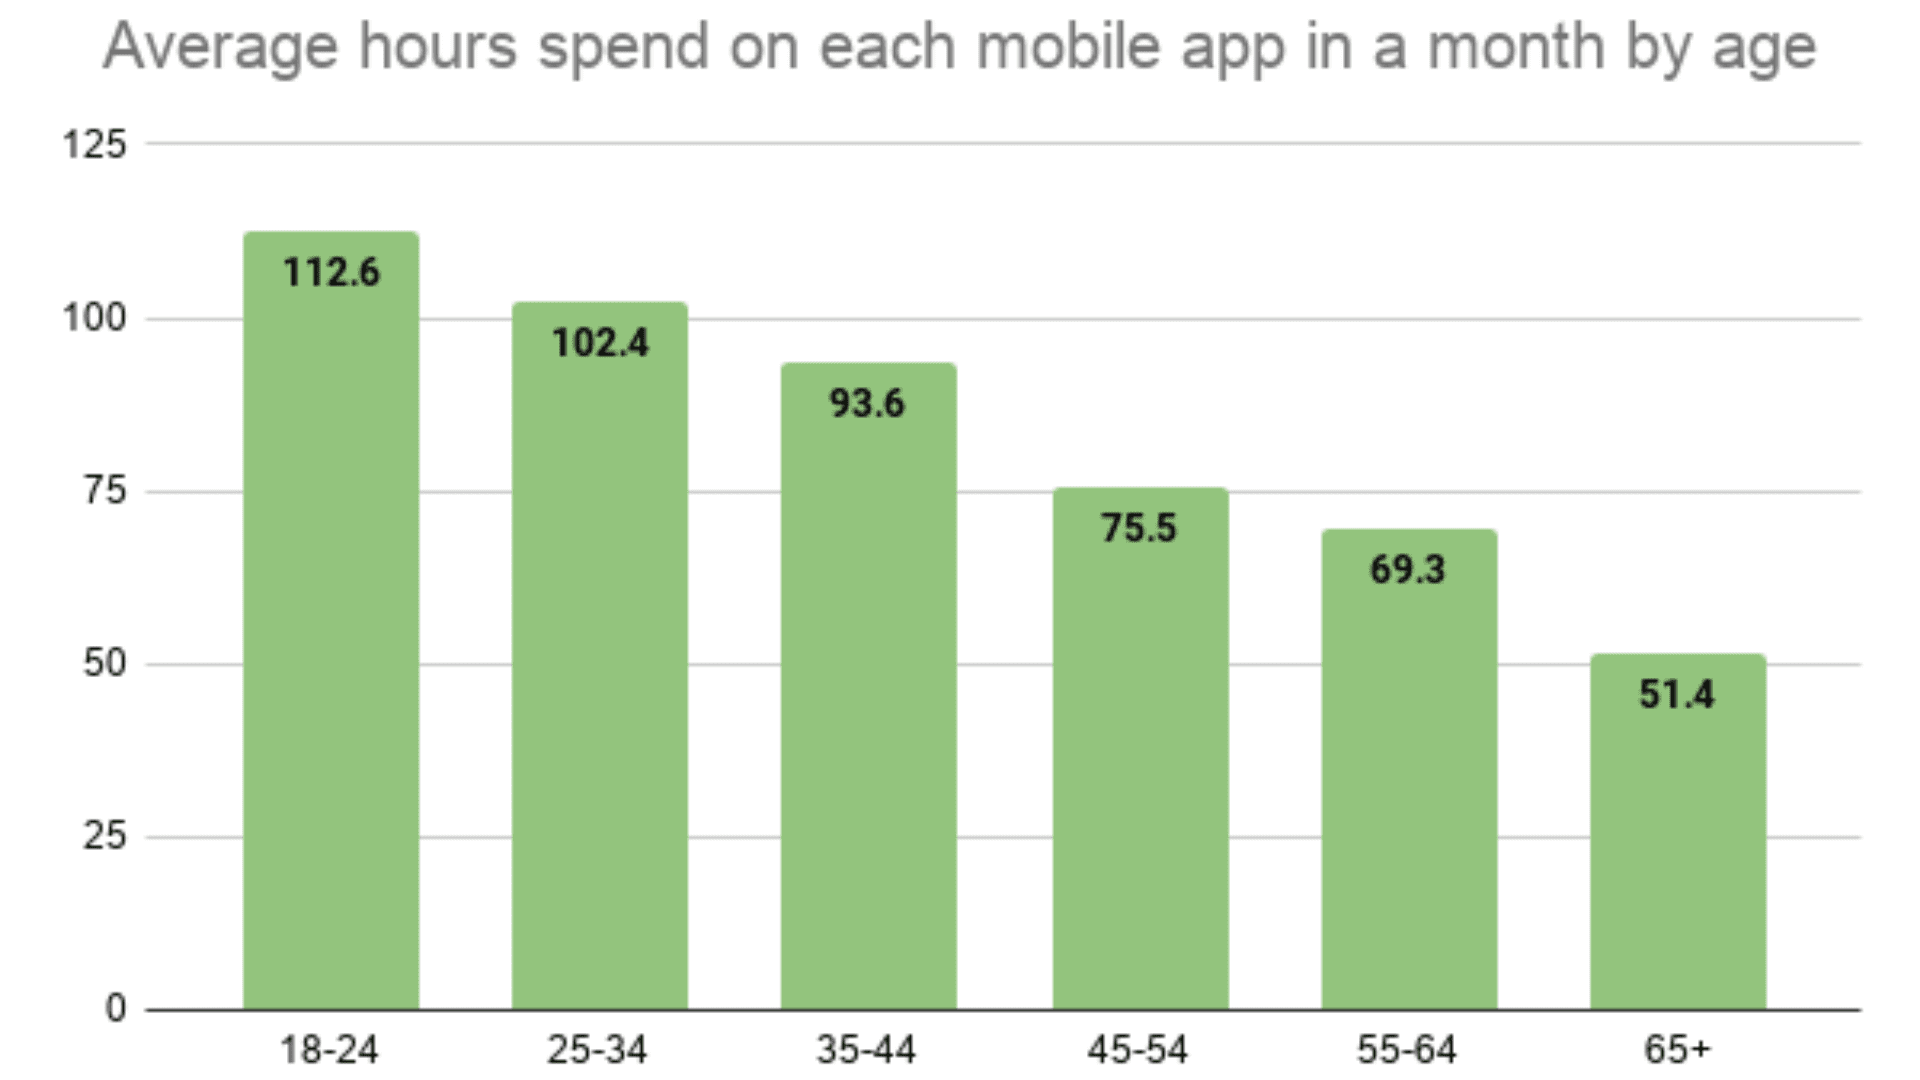 average hours spend on mobile apps in a month by age